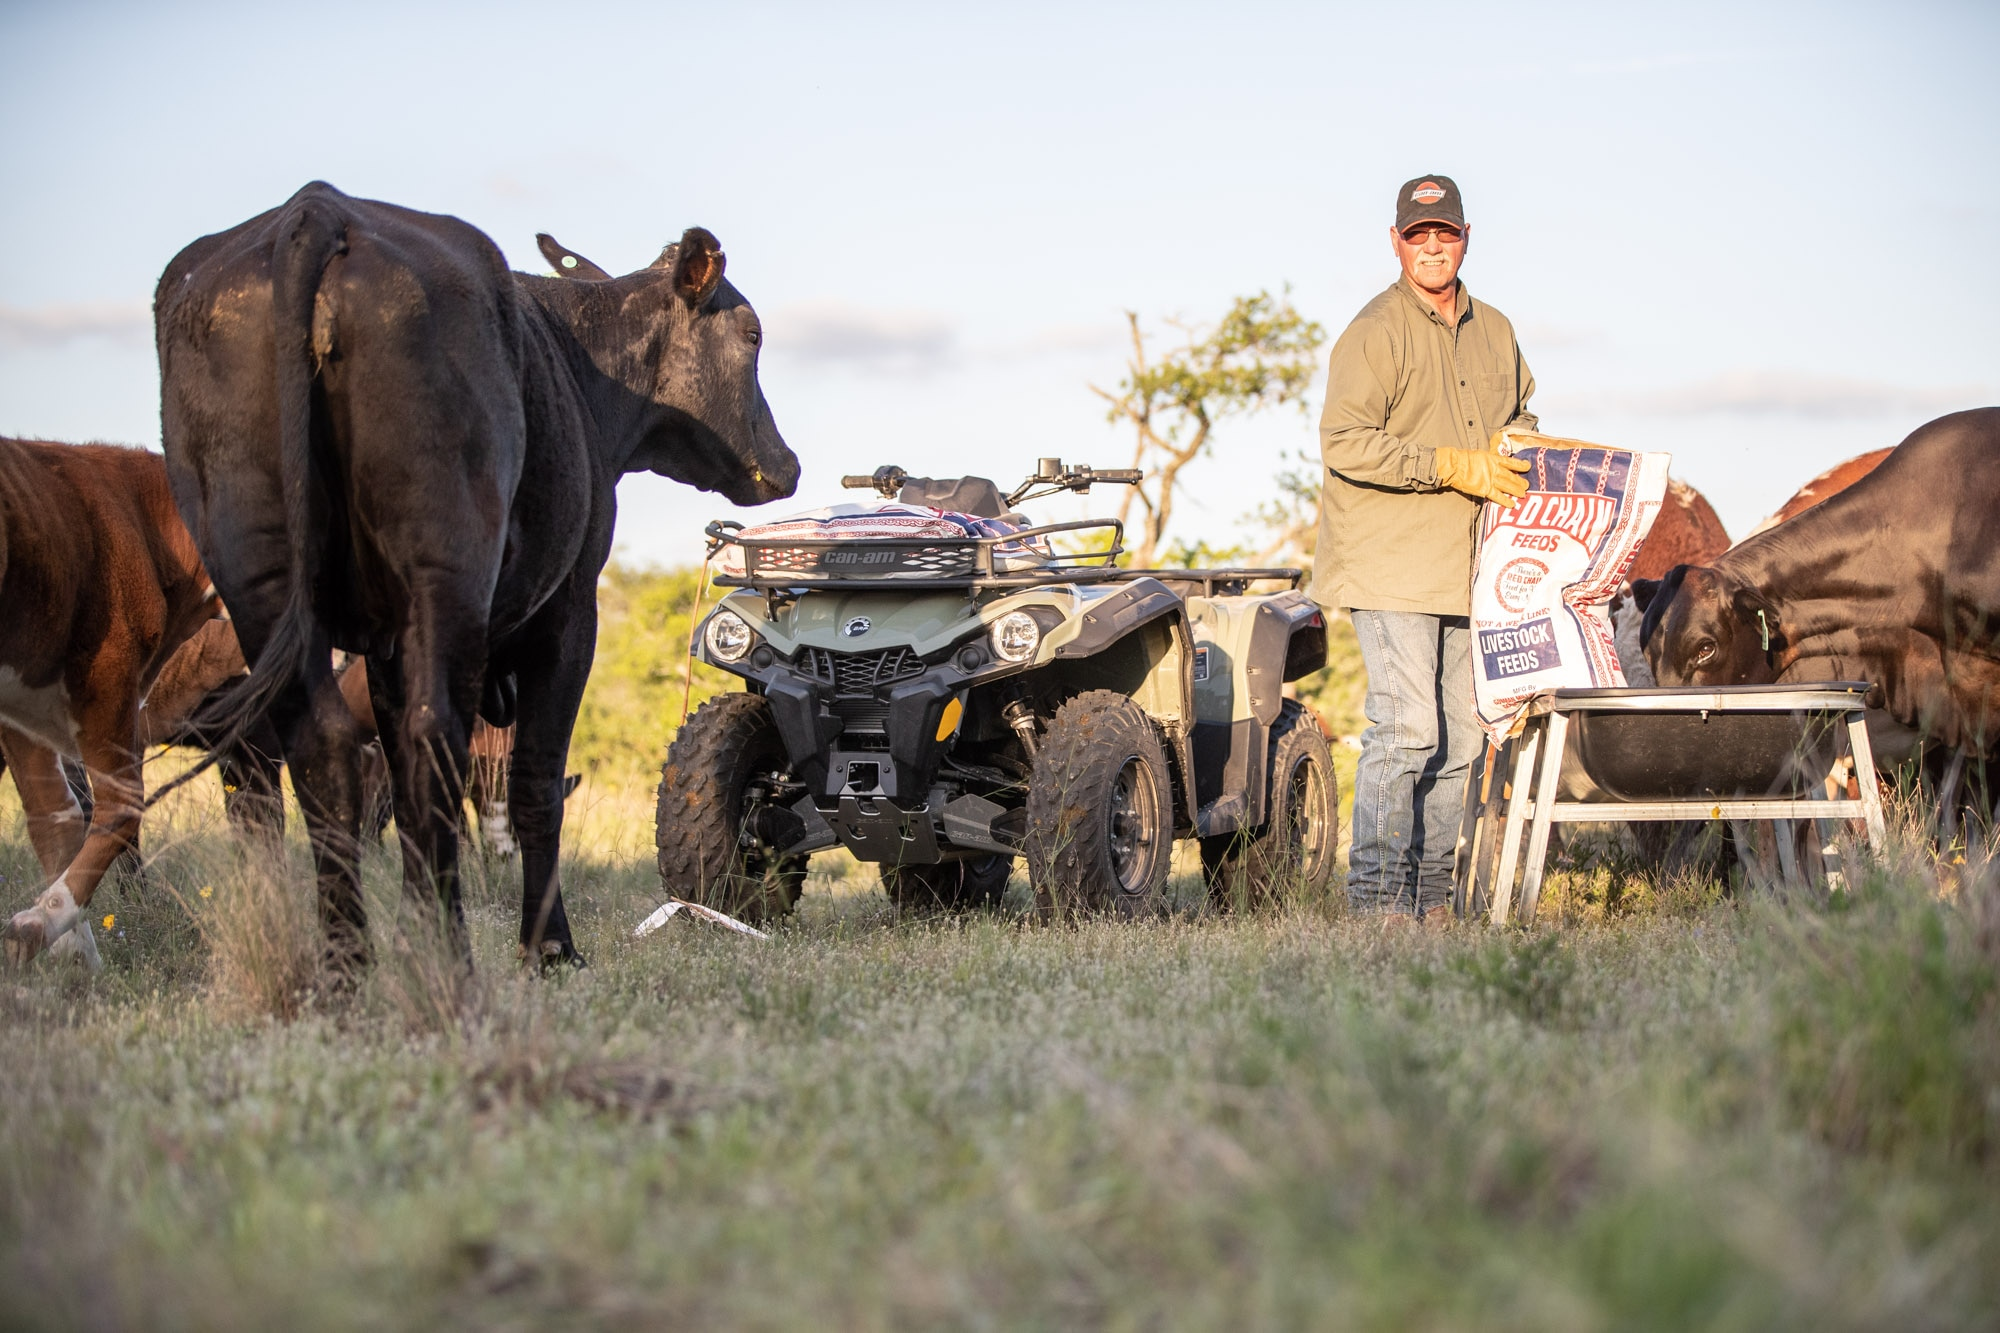 A Can-Am Outlander DPS ATV in a ranch surrounded by animals and a man